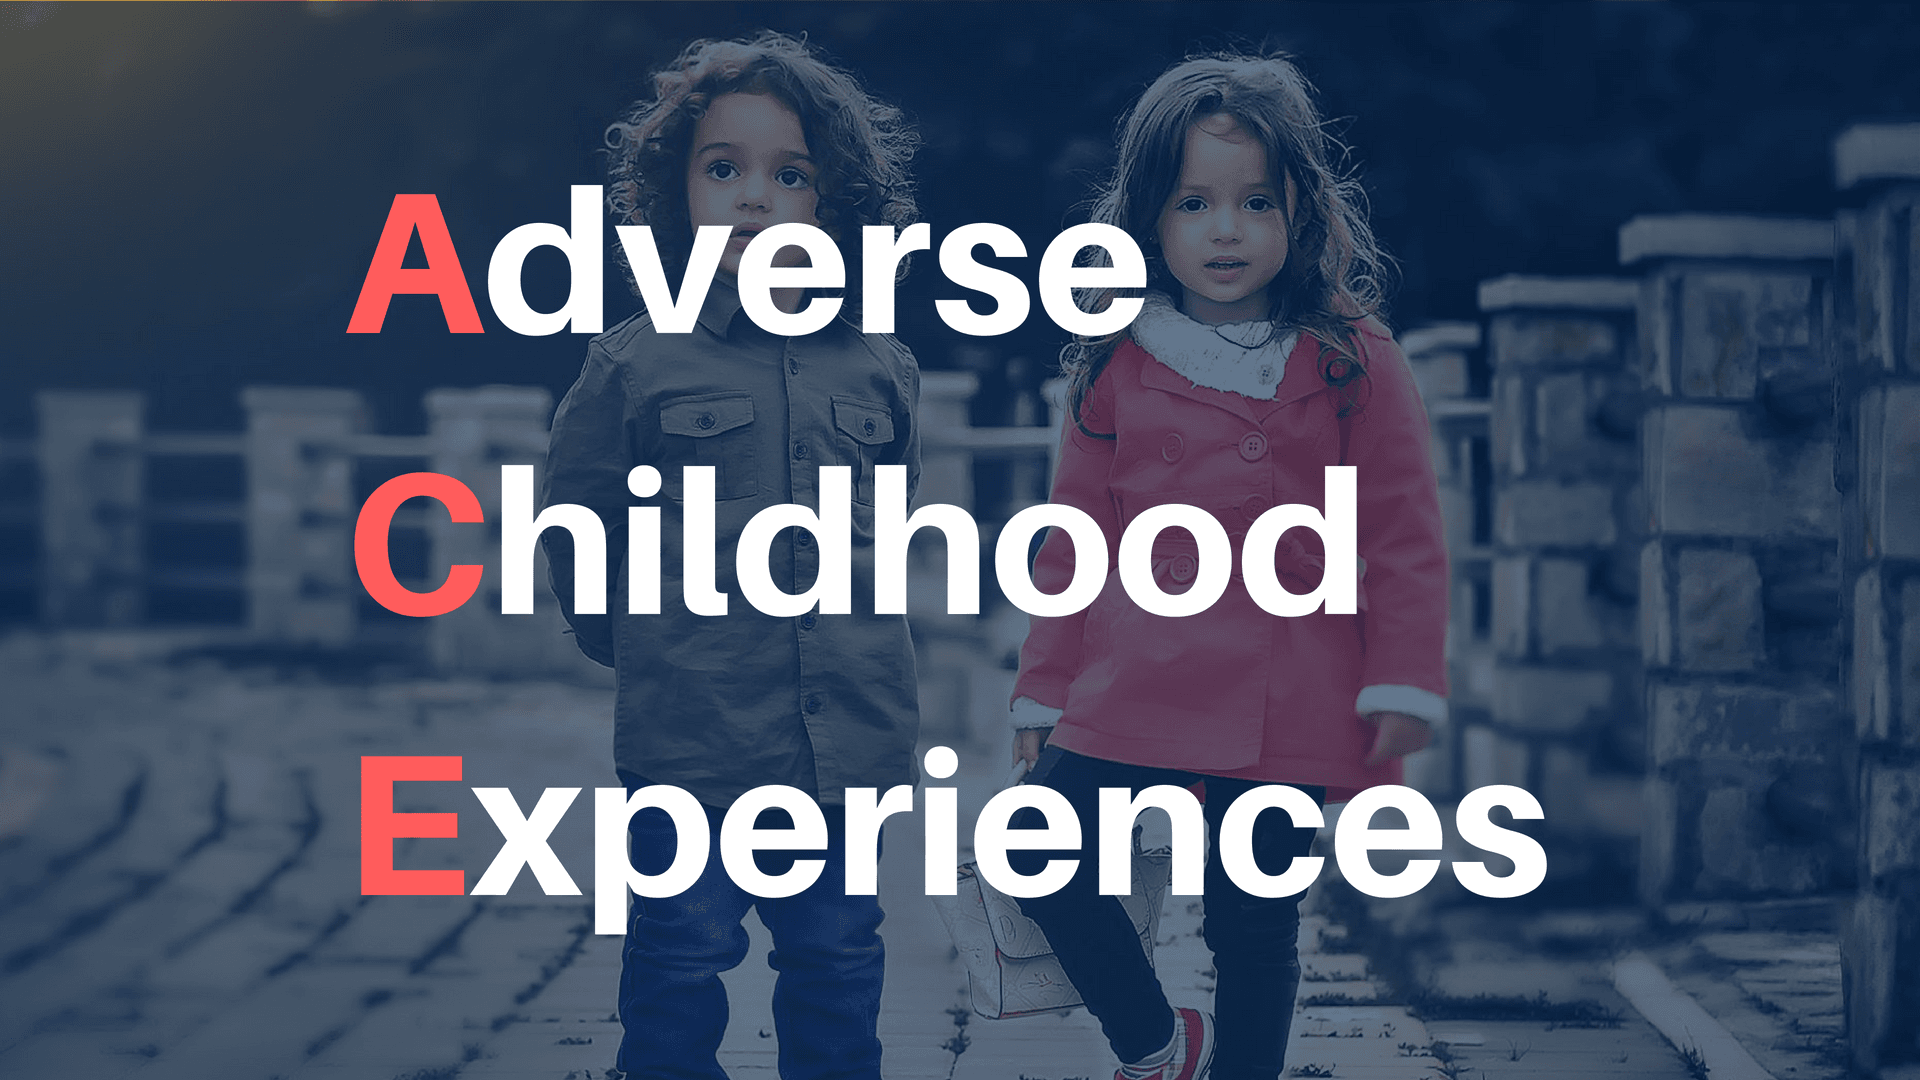 Two Children standing. Text says Adverse Childhood Experiences.